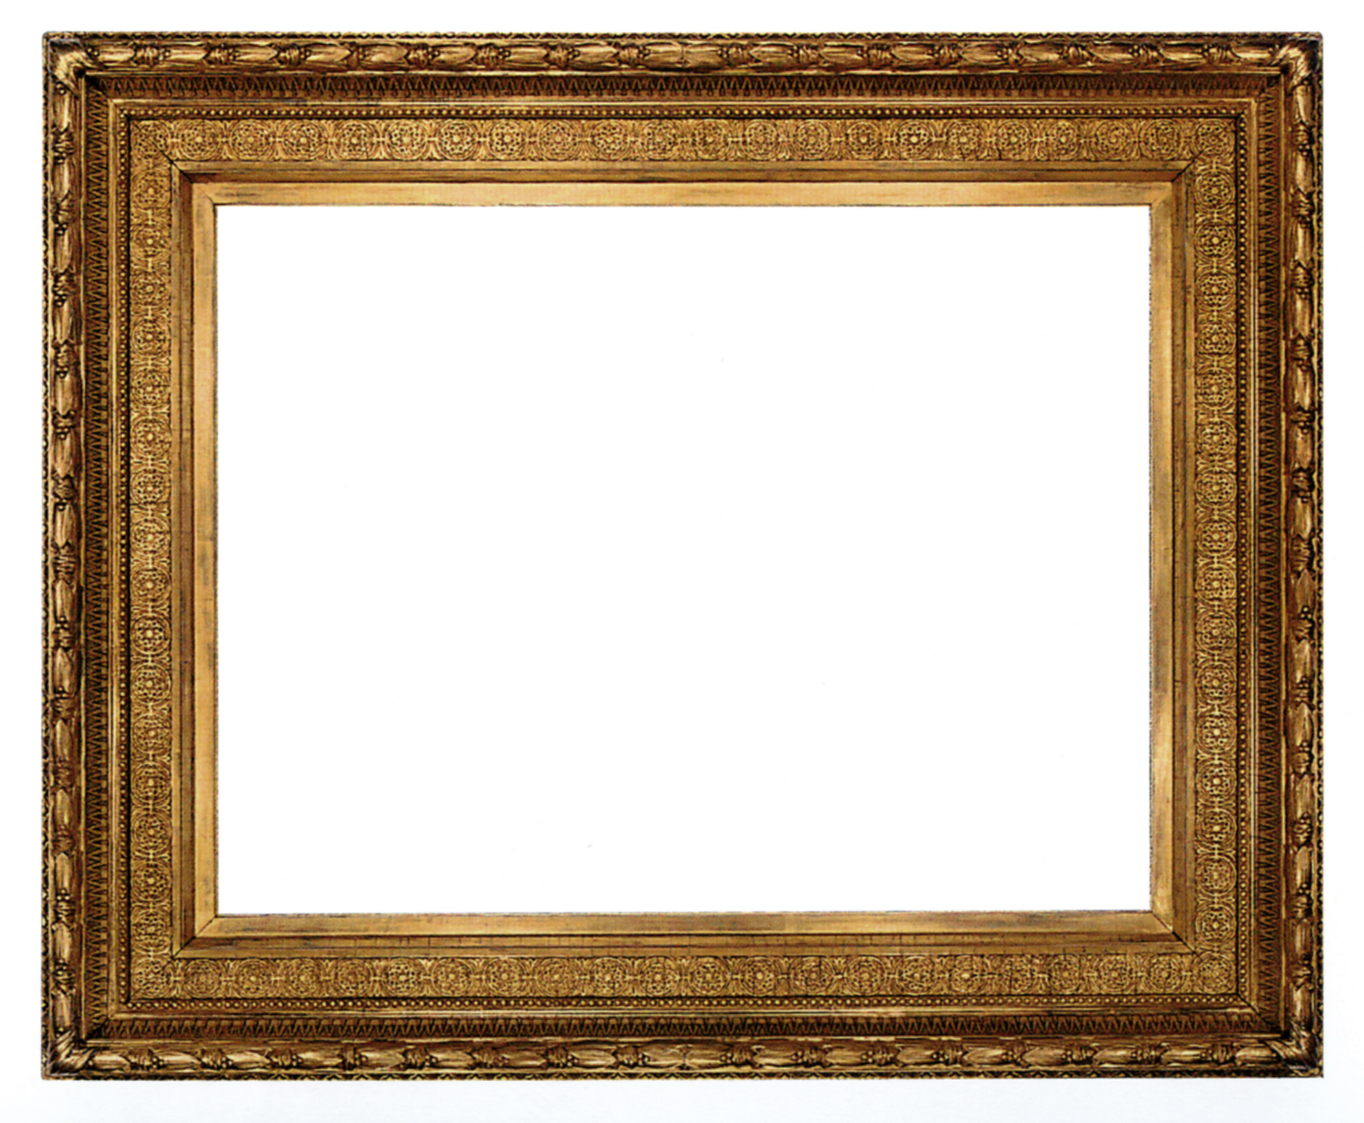 an american gilt composition frame with continuous moorish decorative